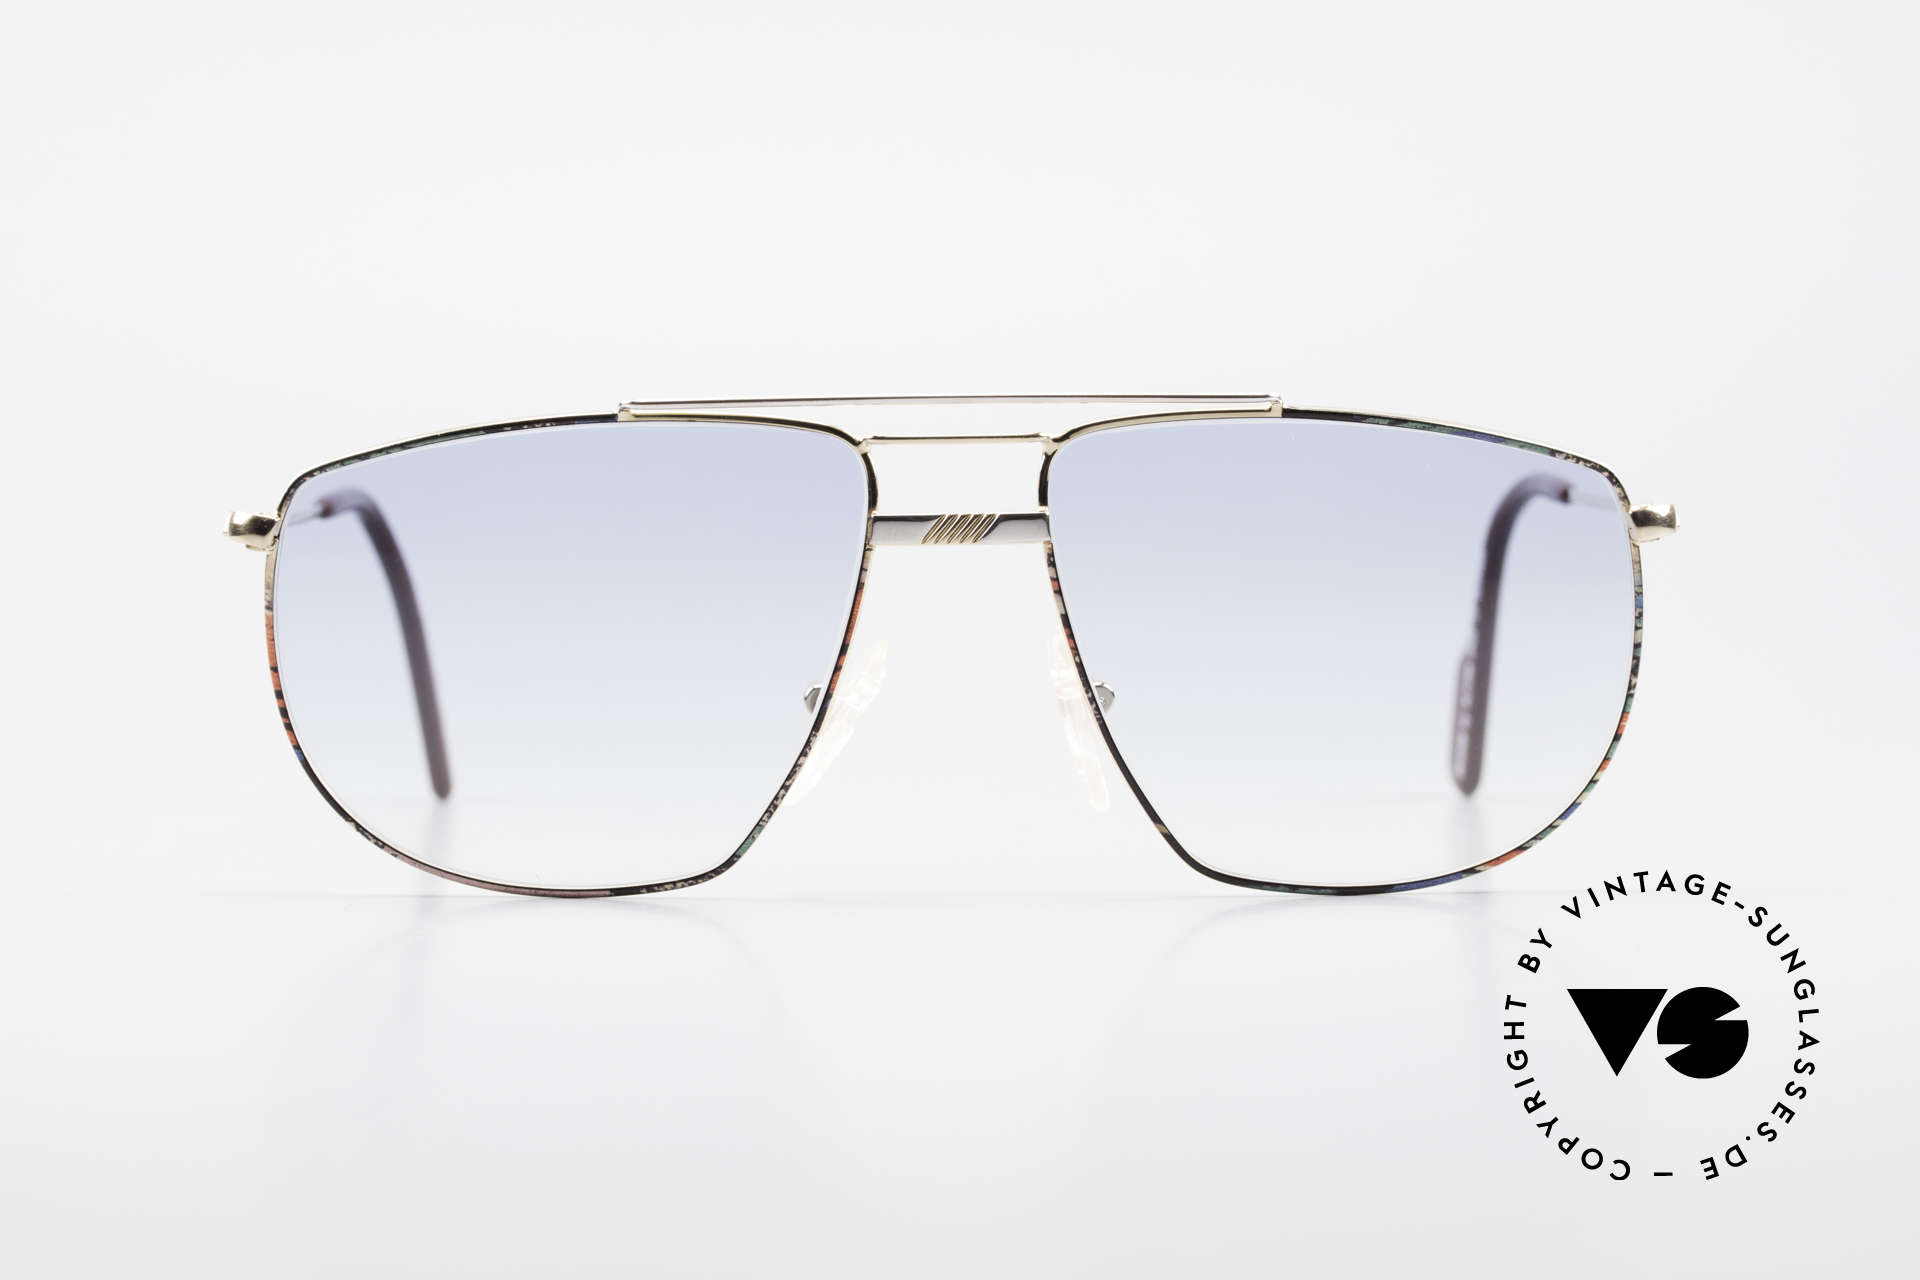 Alpina FM69 Rare Vintage Sunglasses 90's, tangible premium craftsmanship (made in Germany), Made for Men